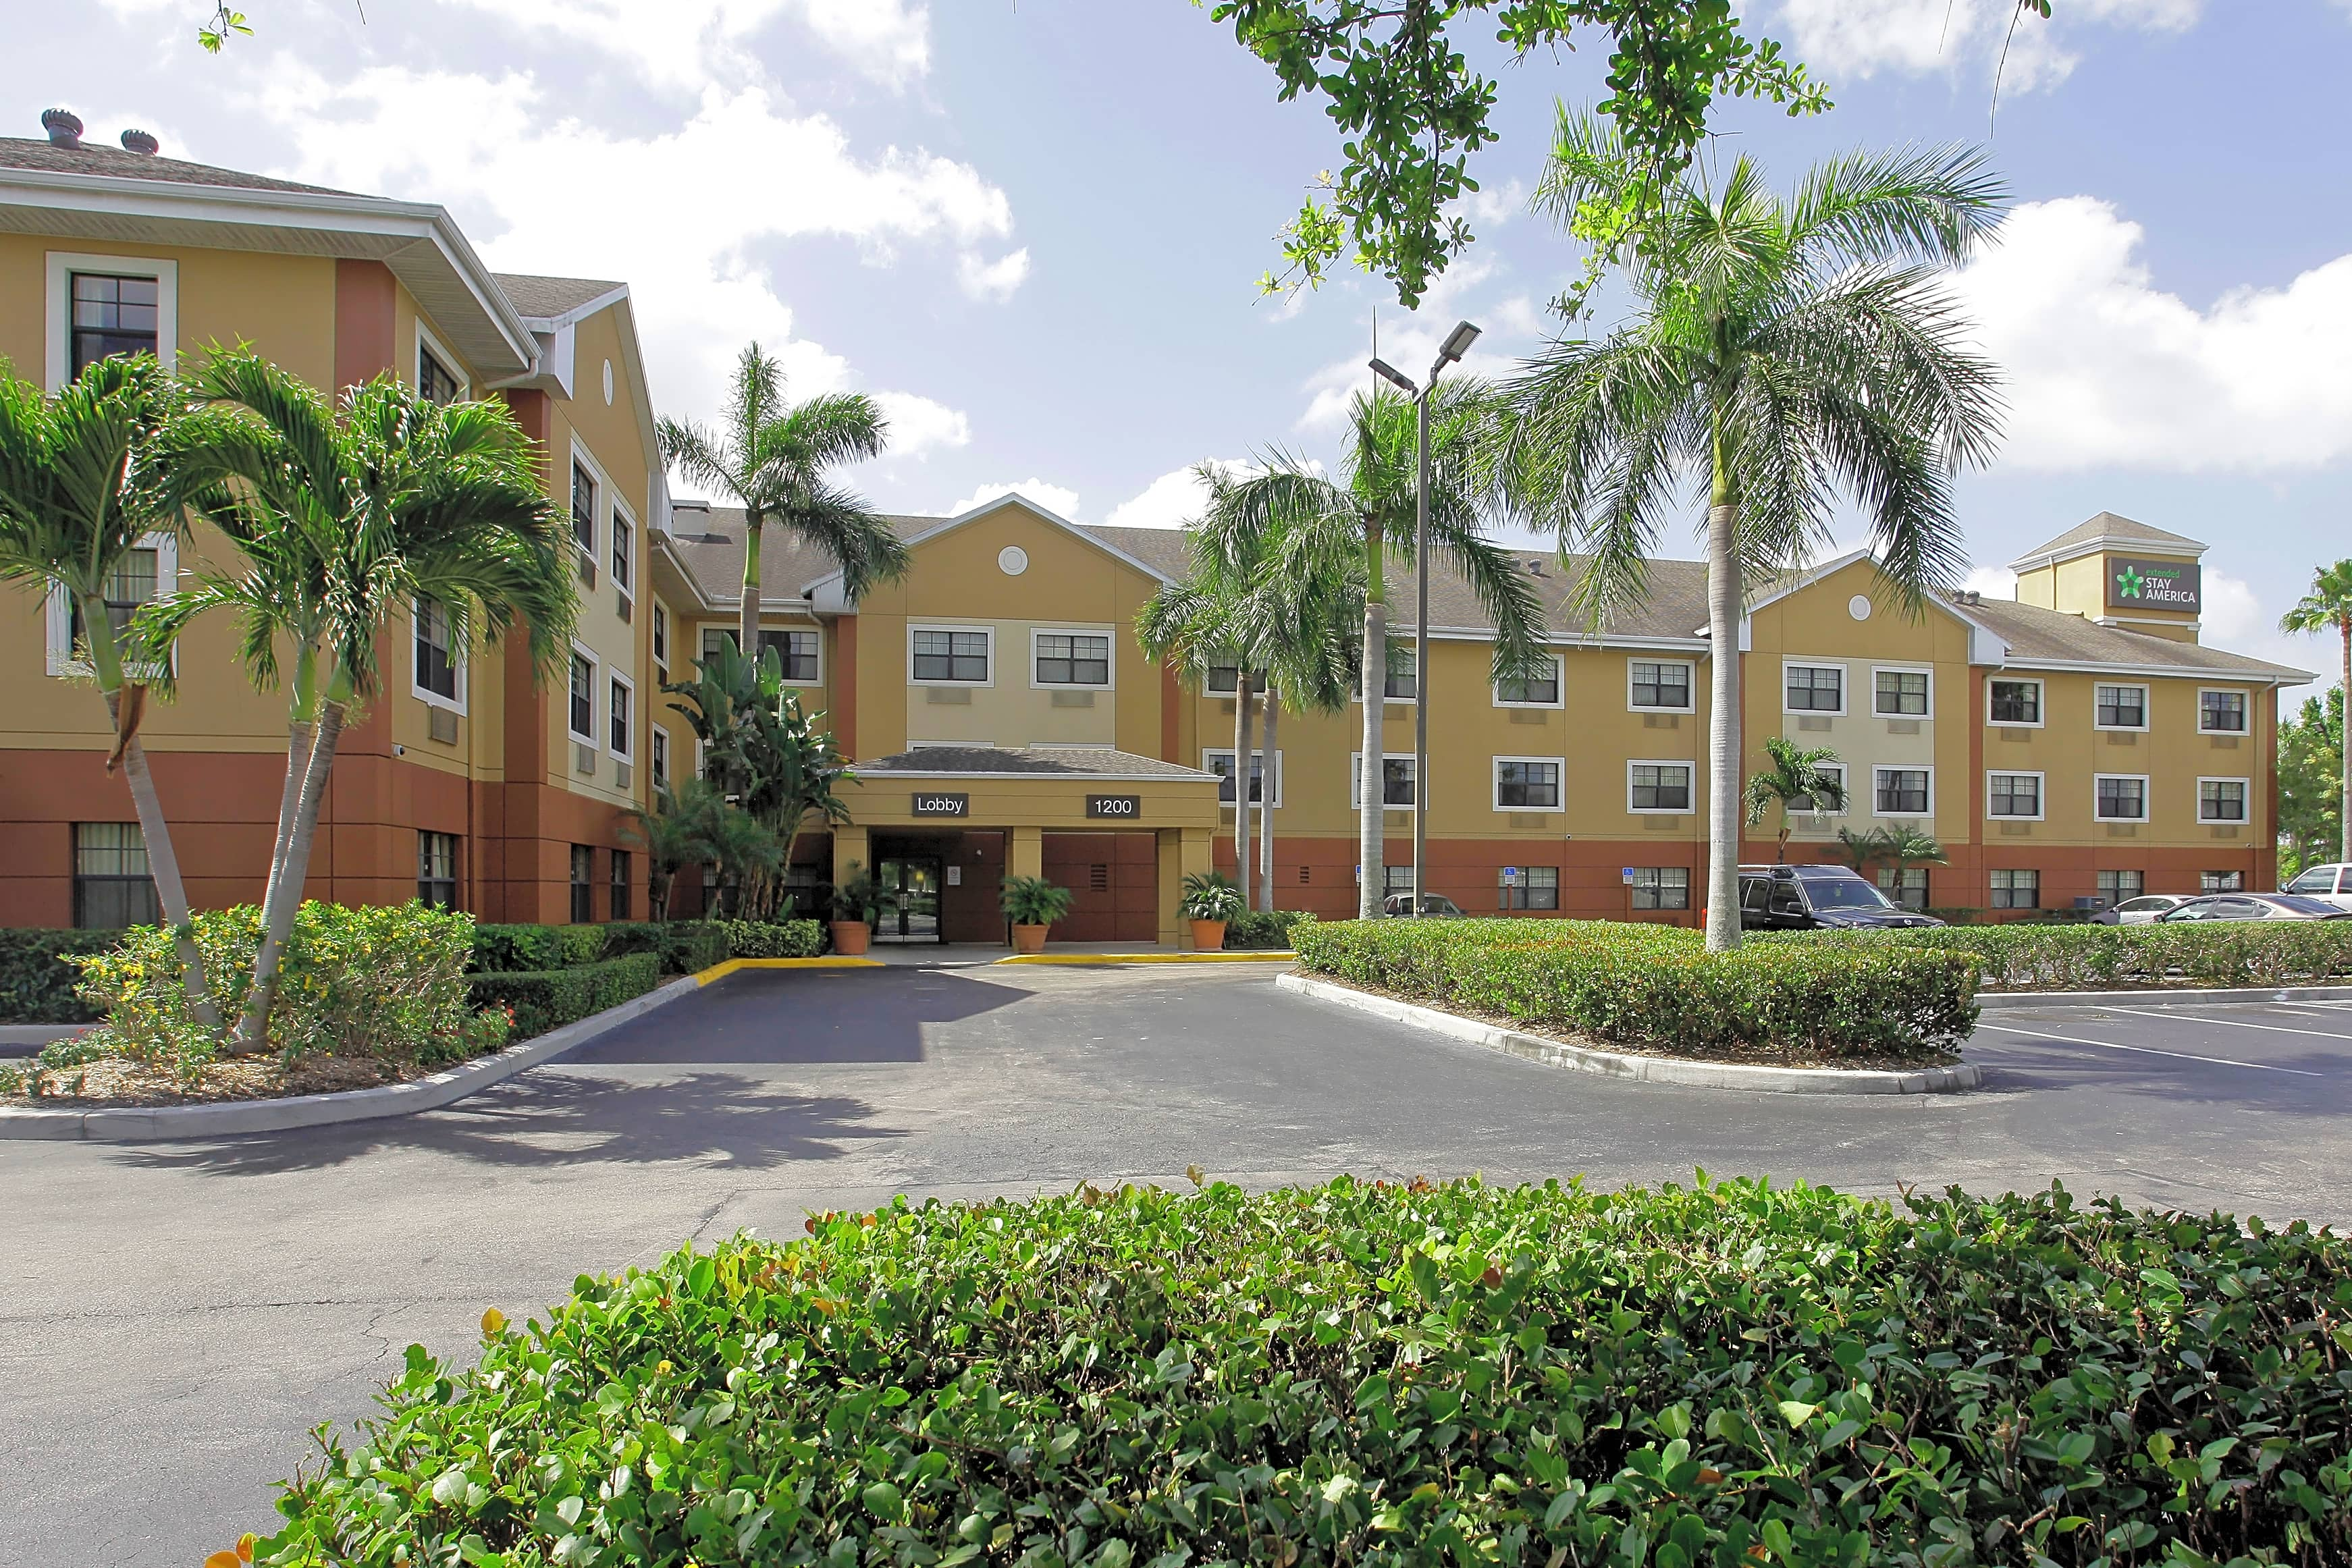 NSU Housing Furnished Studio - Fort Lauderdale - Deerfield Beach for Nova Southeastern University Students in Fort Lauderdale, FL